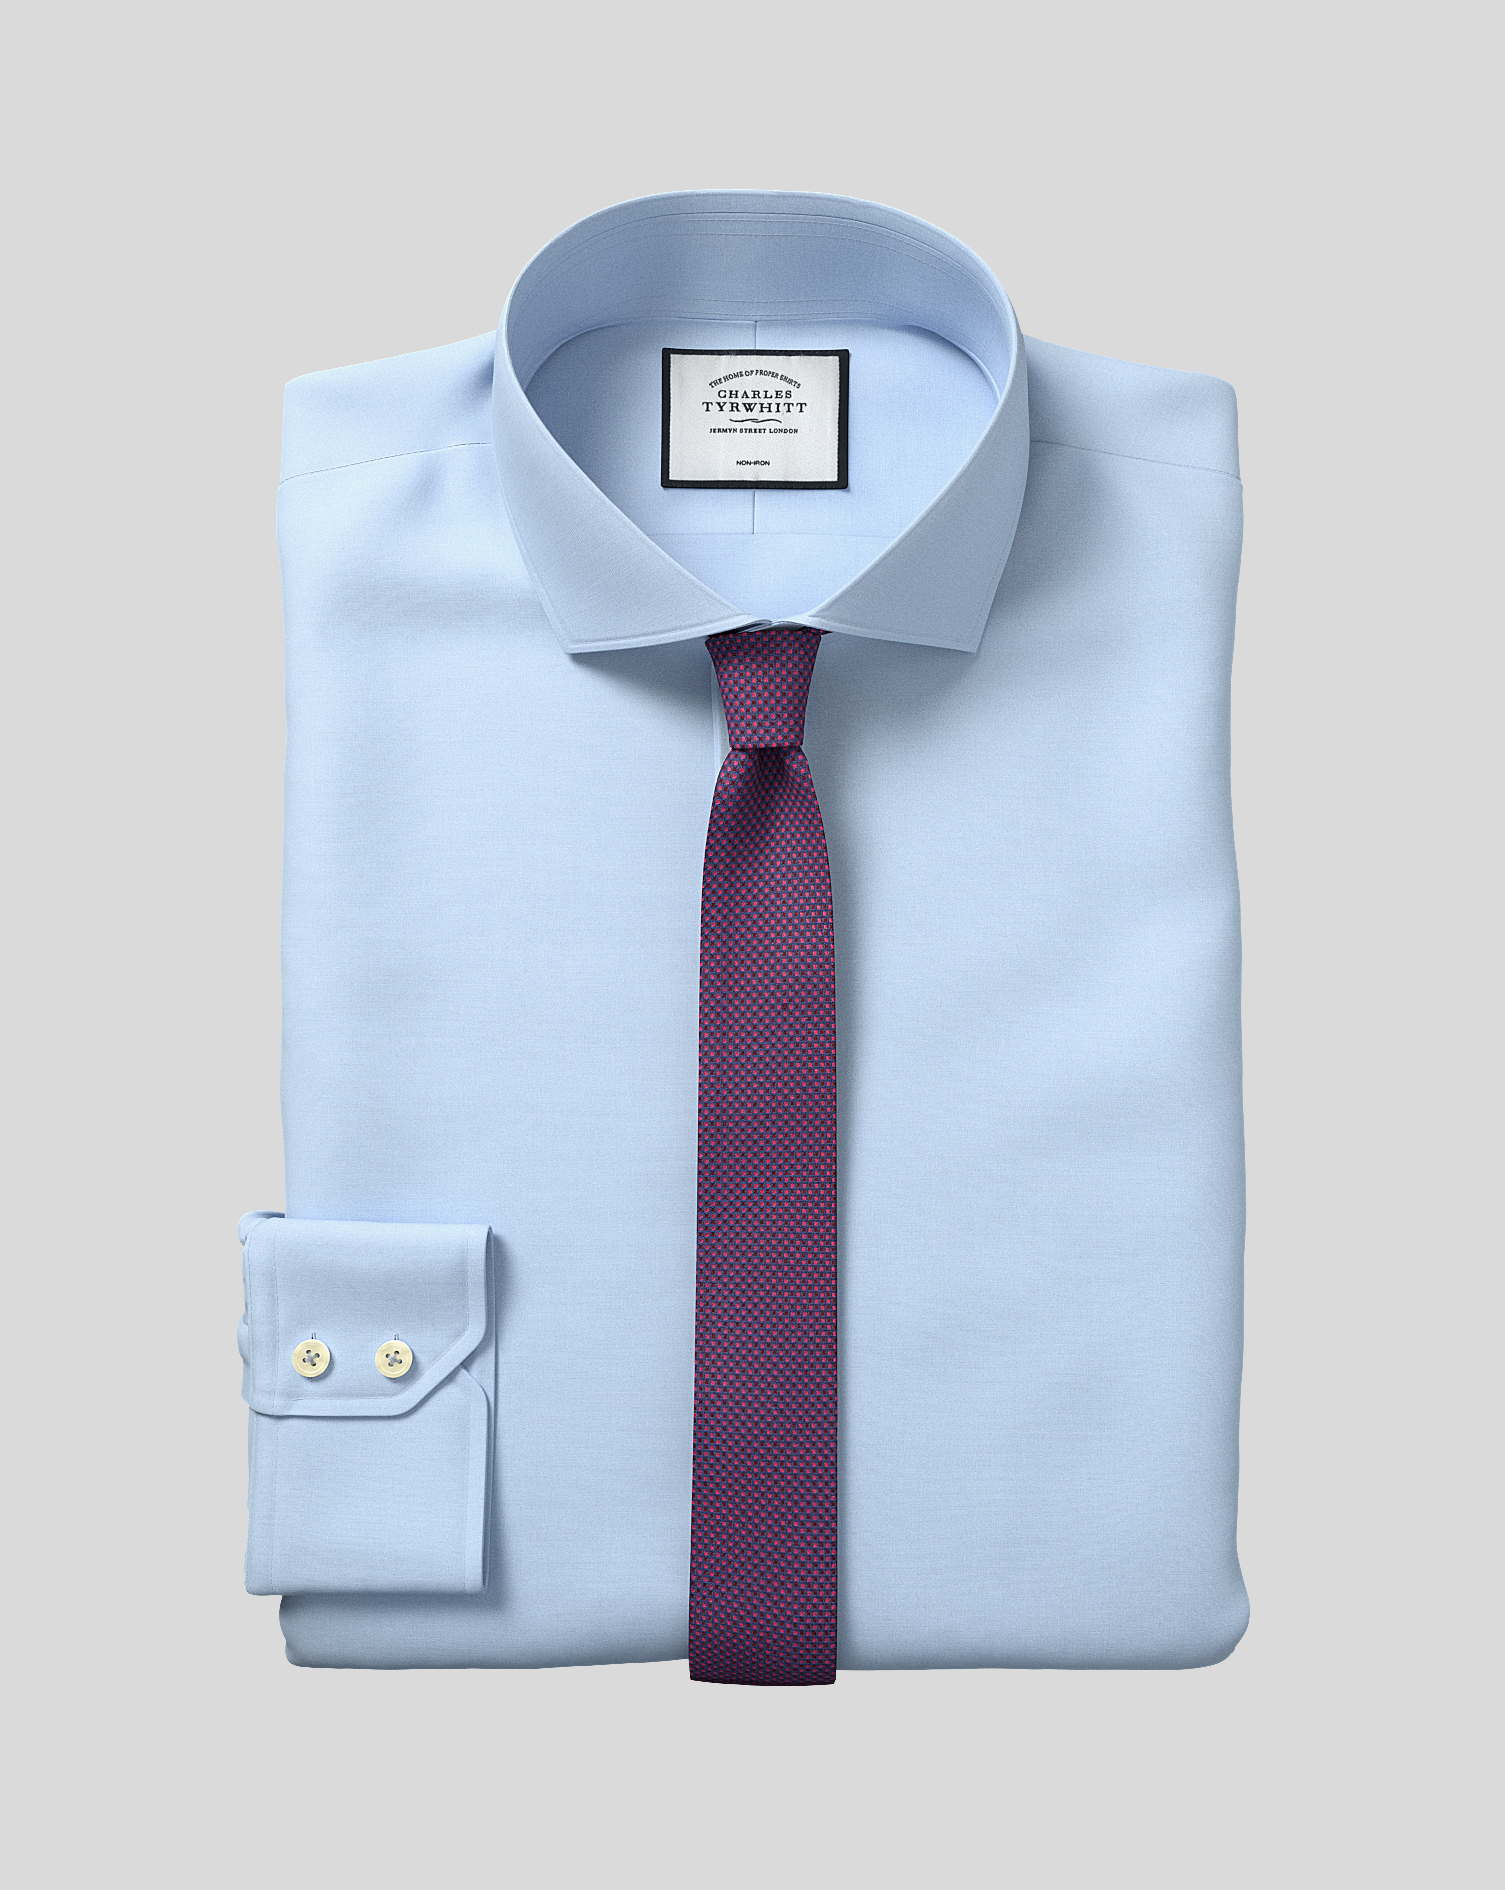 Extra Slim Fit Non-Iron Cutaway Sky Blue Tyrwhitt Cool Cotton Formal Shirt Single Cuff Size 16.5/33